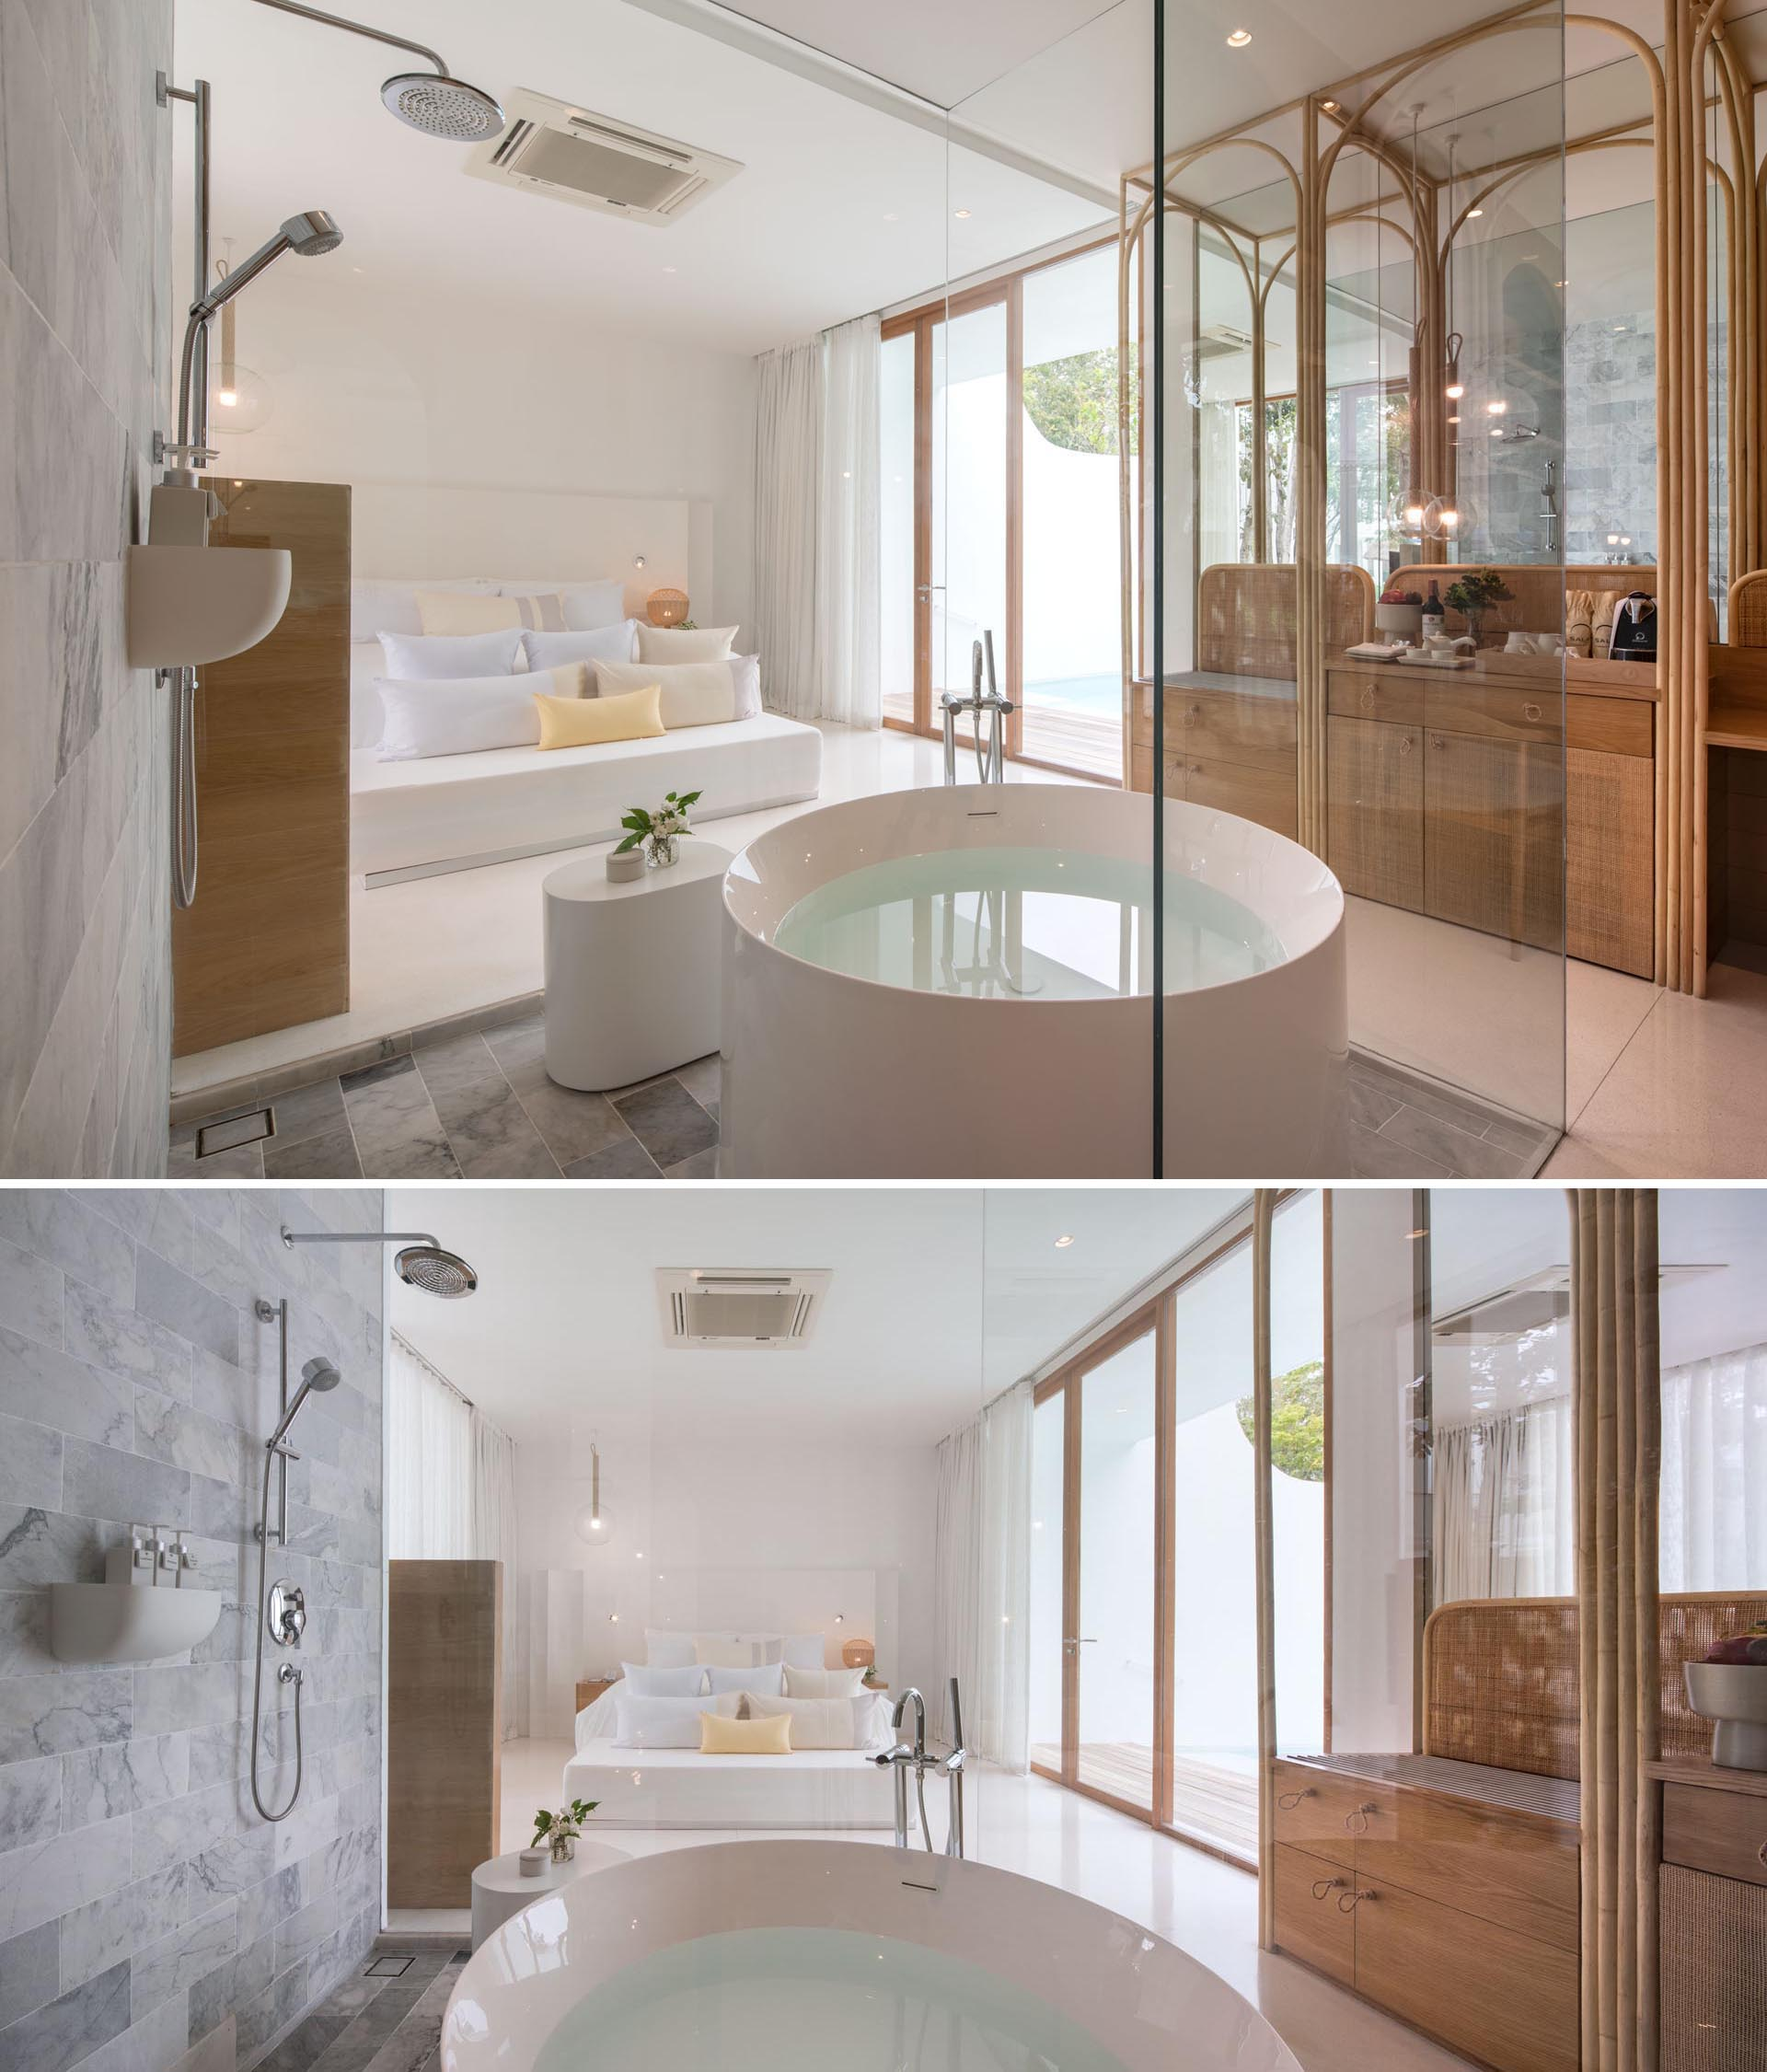 A hotel room with an open bathtub and shower.